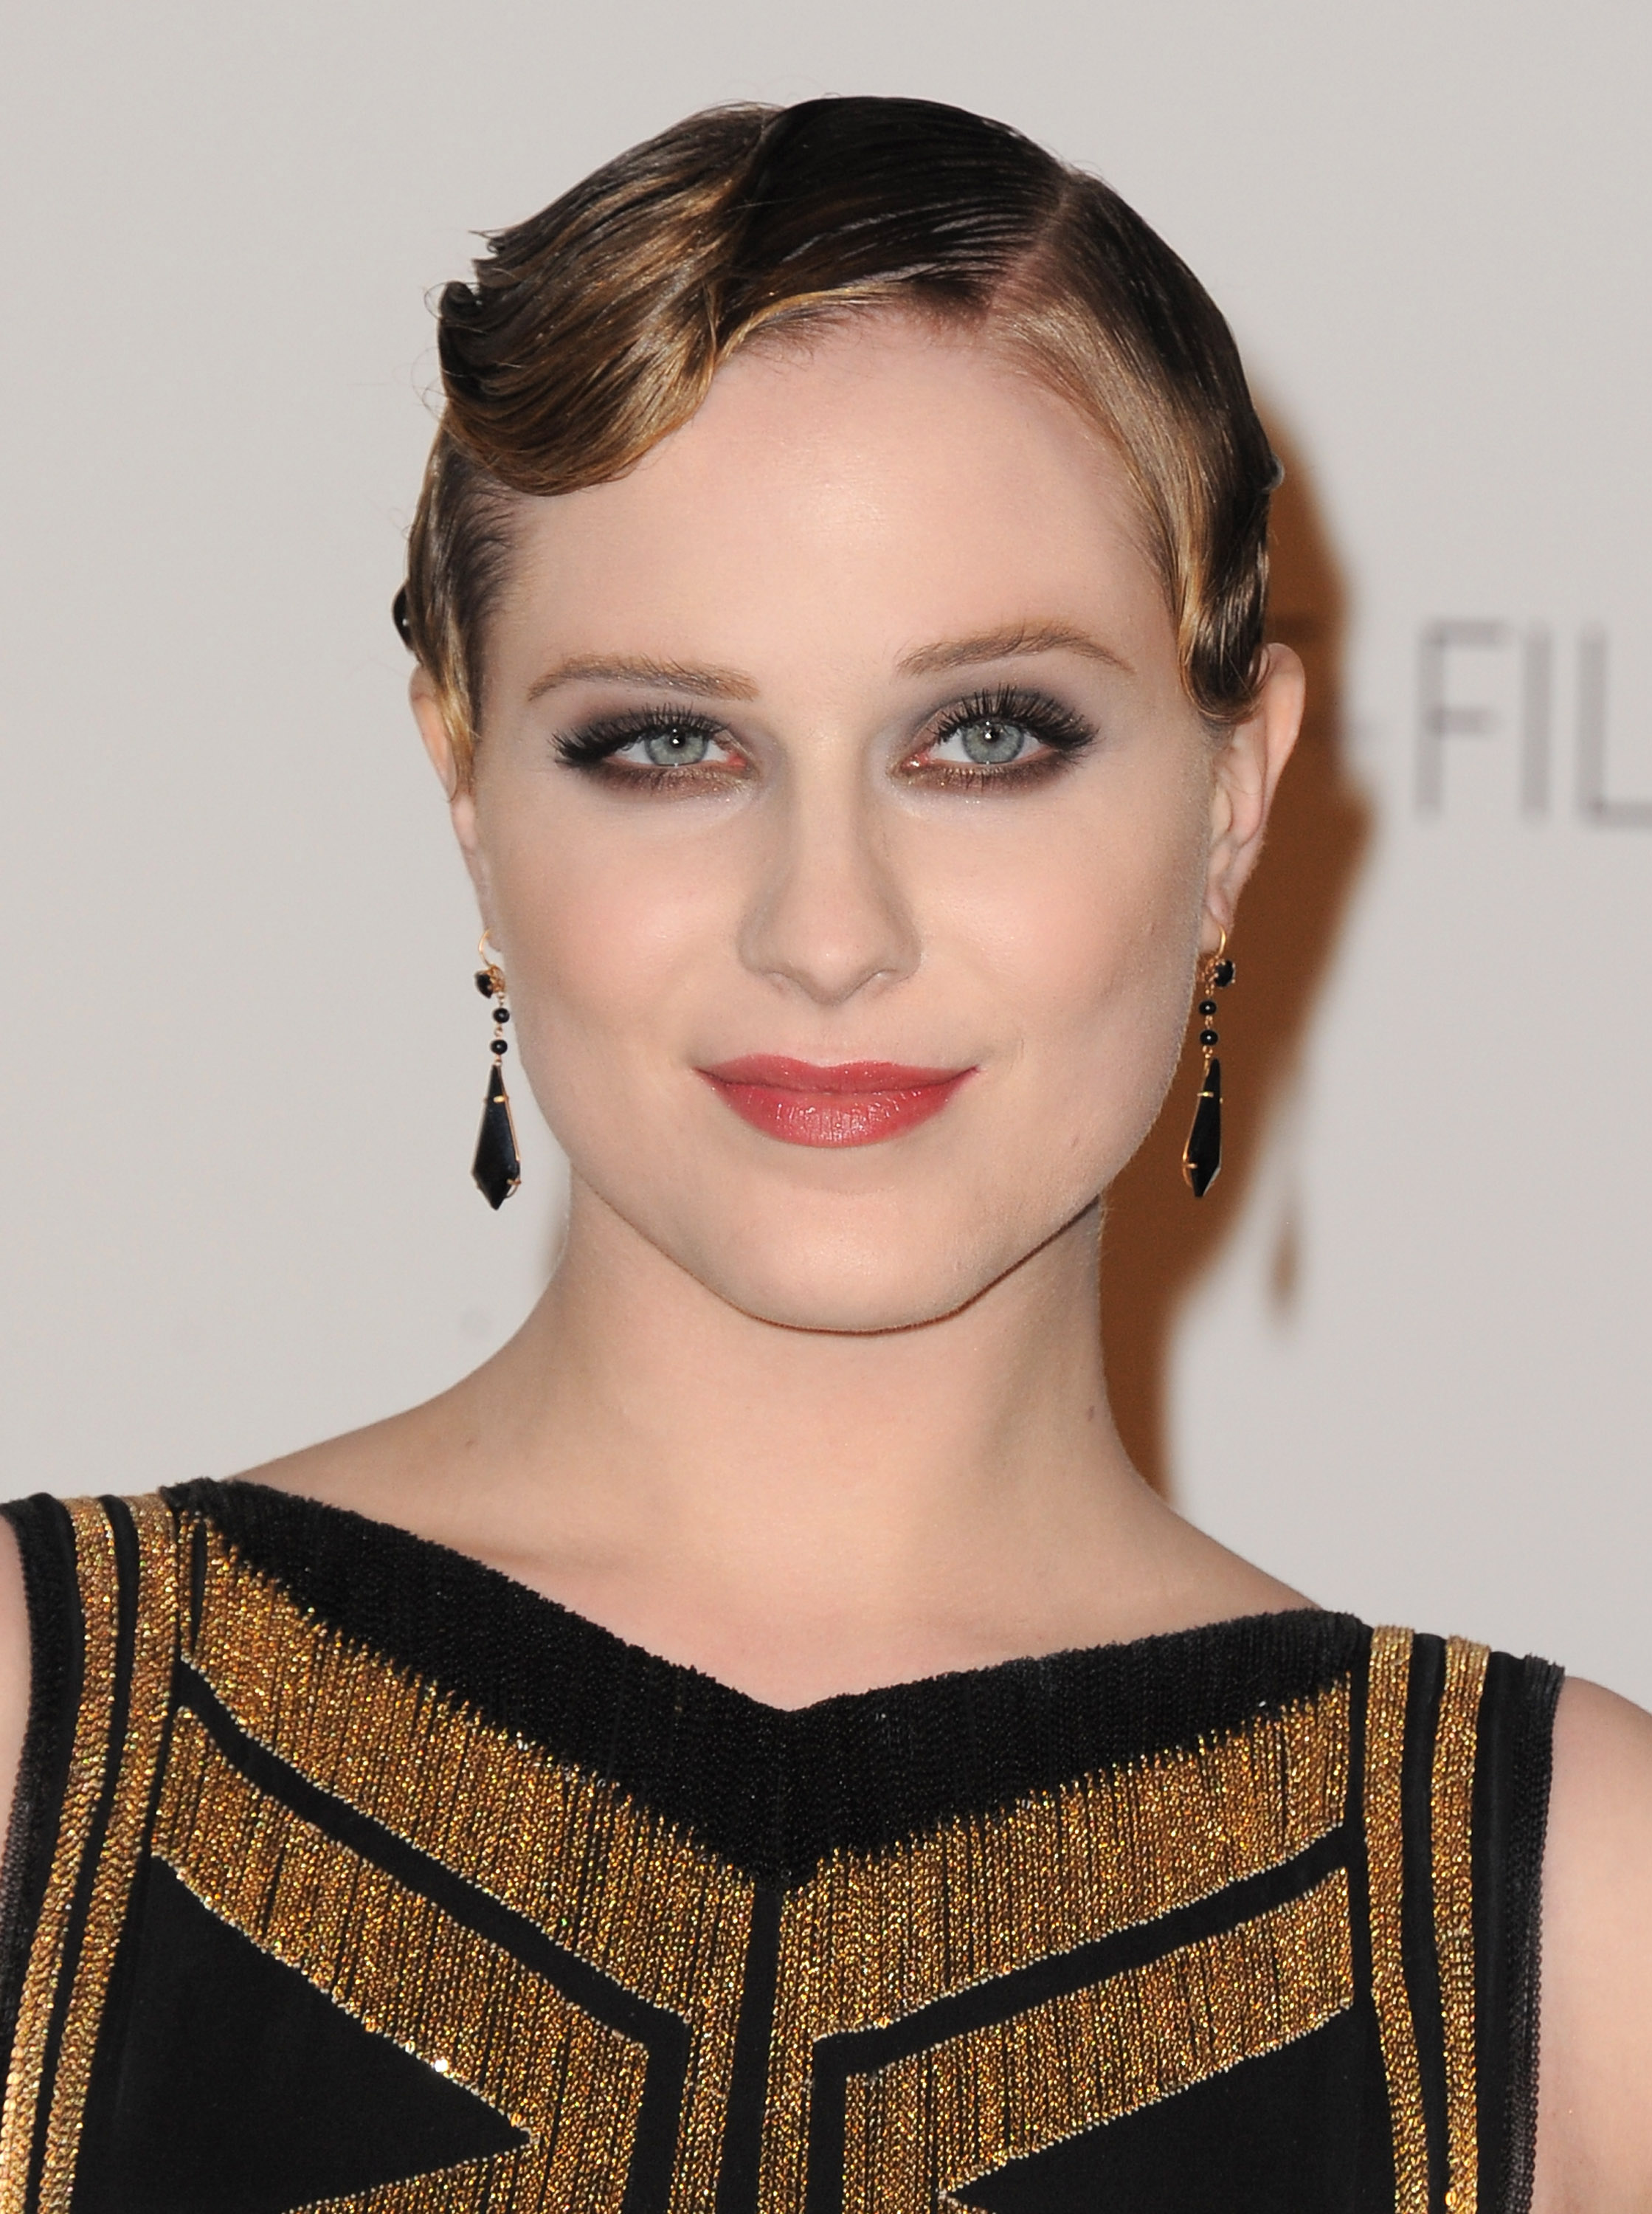 Evan Rachel Wood at a LACMA bash.